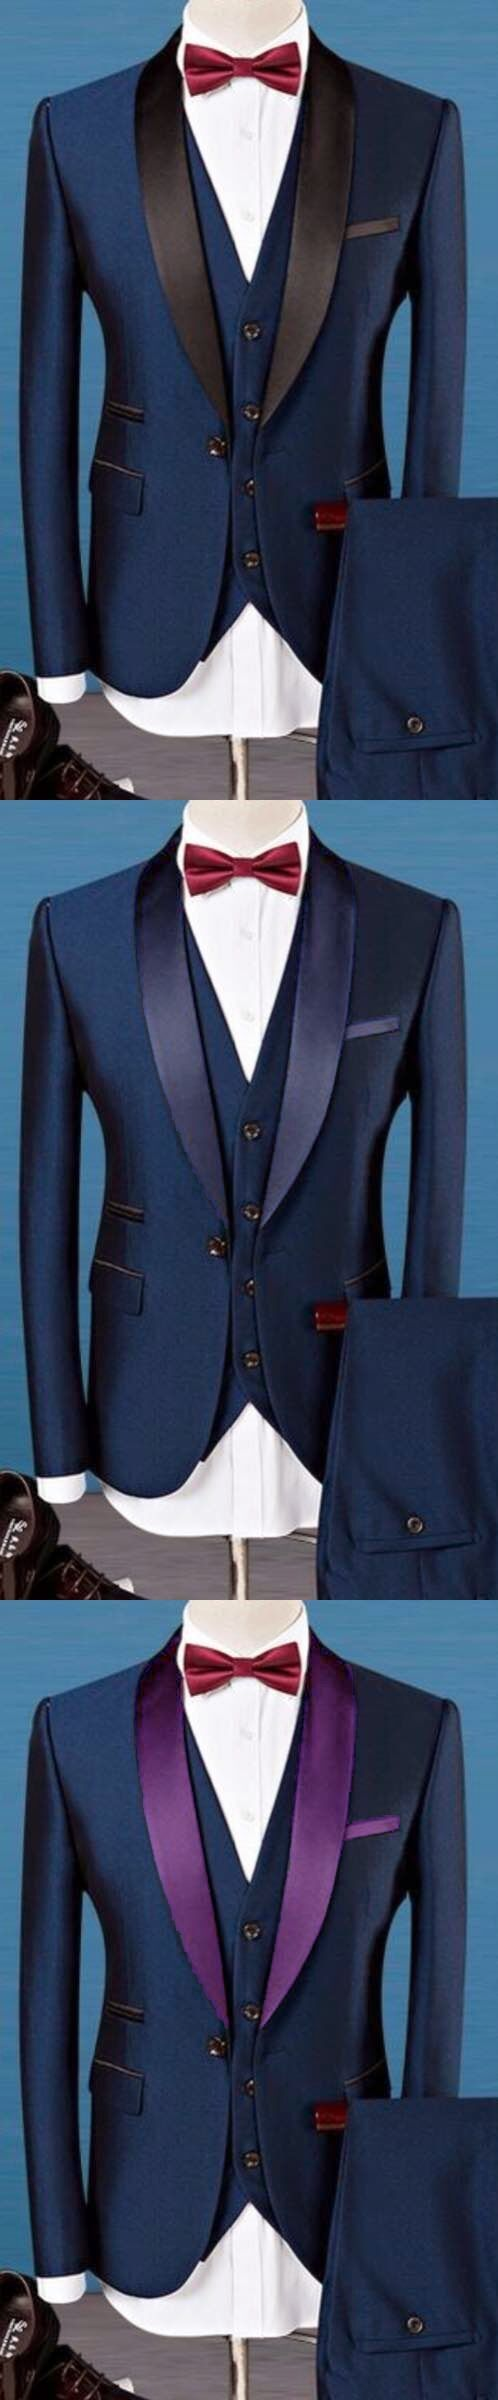 Latest Coat Pant Designs Navy Blue Shawl Lapel Men Suit Slim Fit 3 Piece Blazer Custom Tuxedo Groom Prom Suits Terno Masculino H